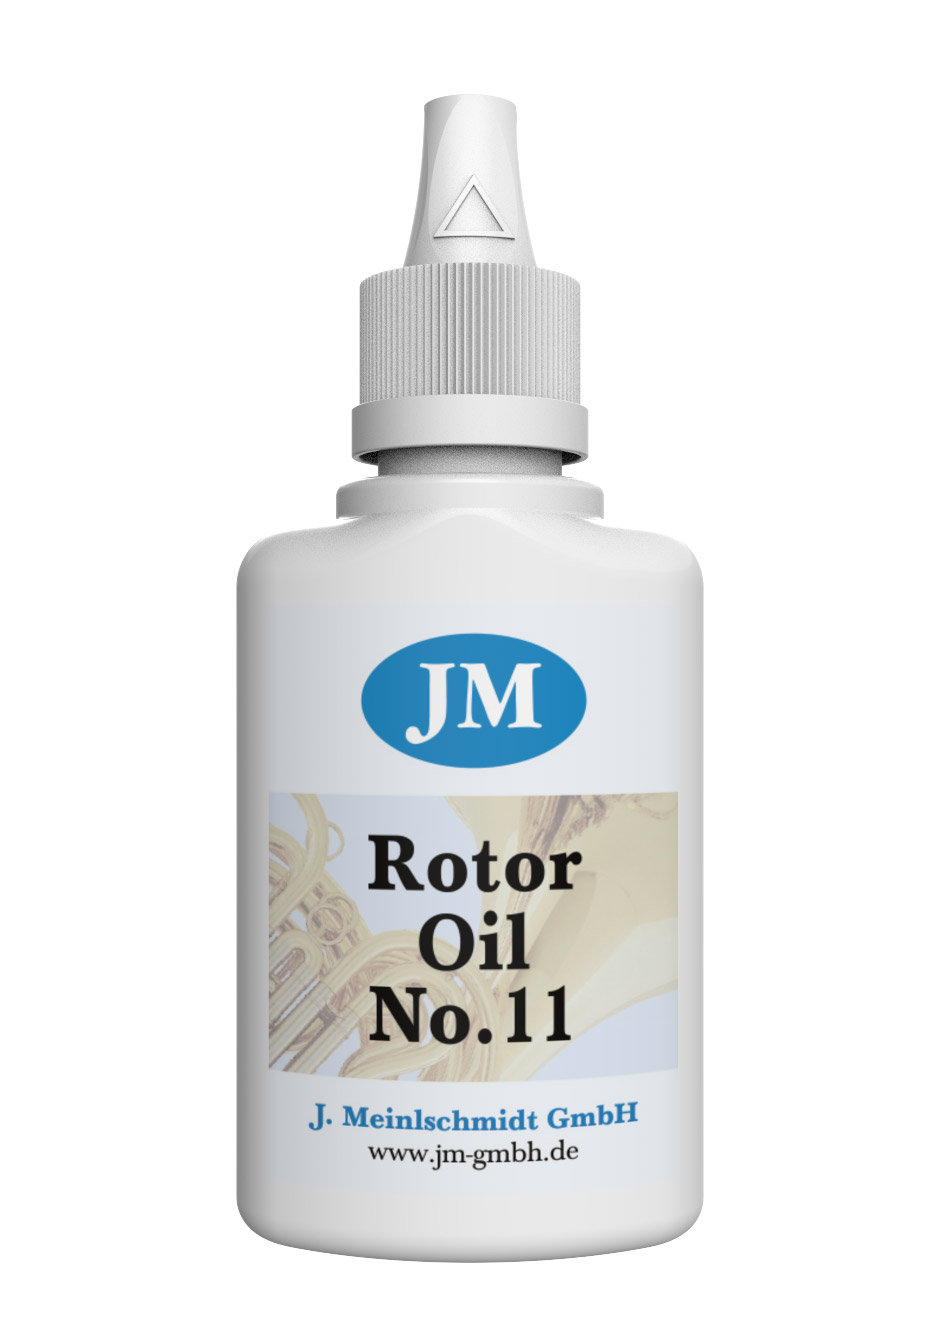 JM Rotor Oil 11 - Synthetic